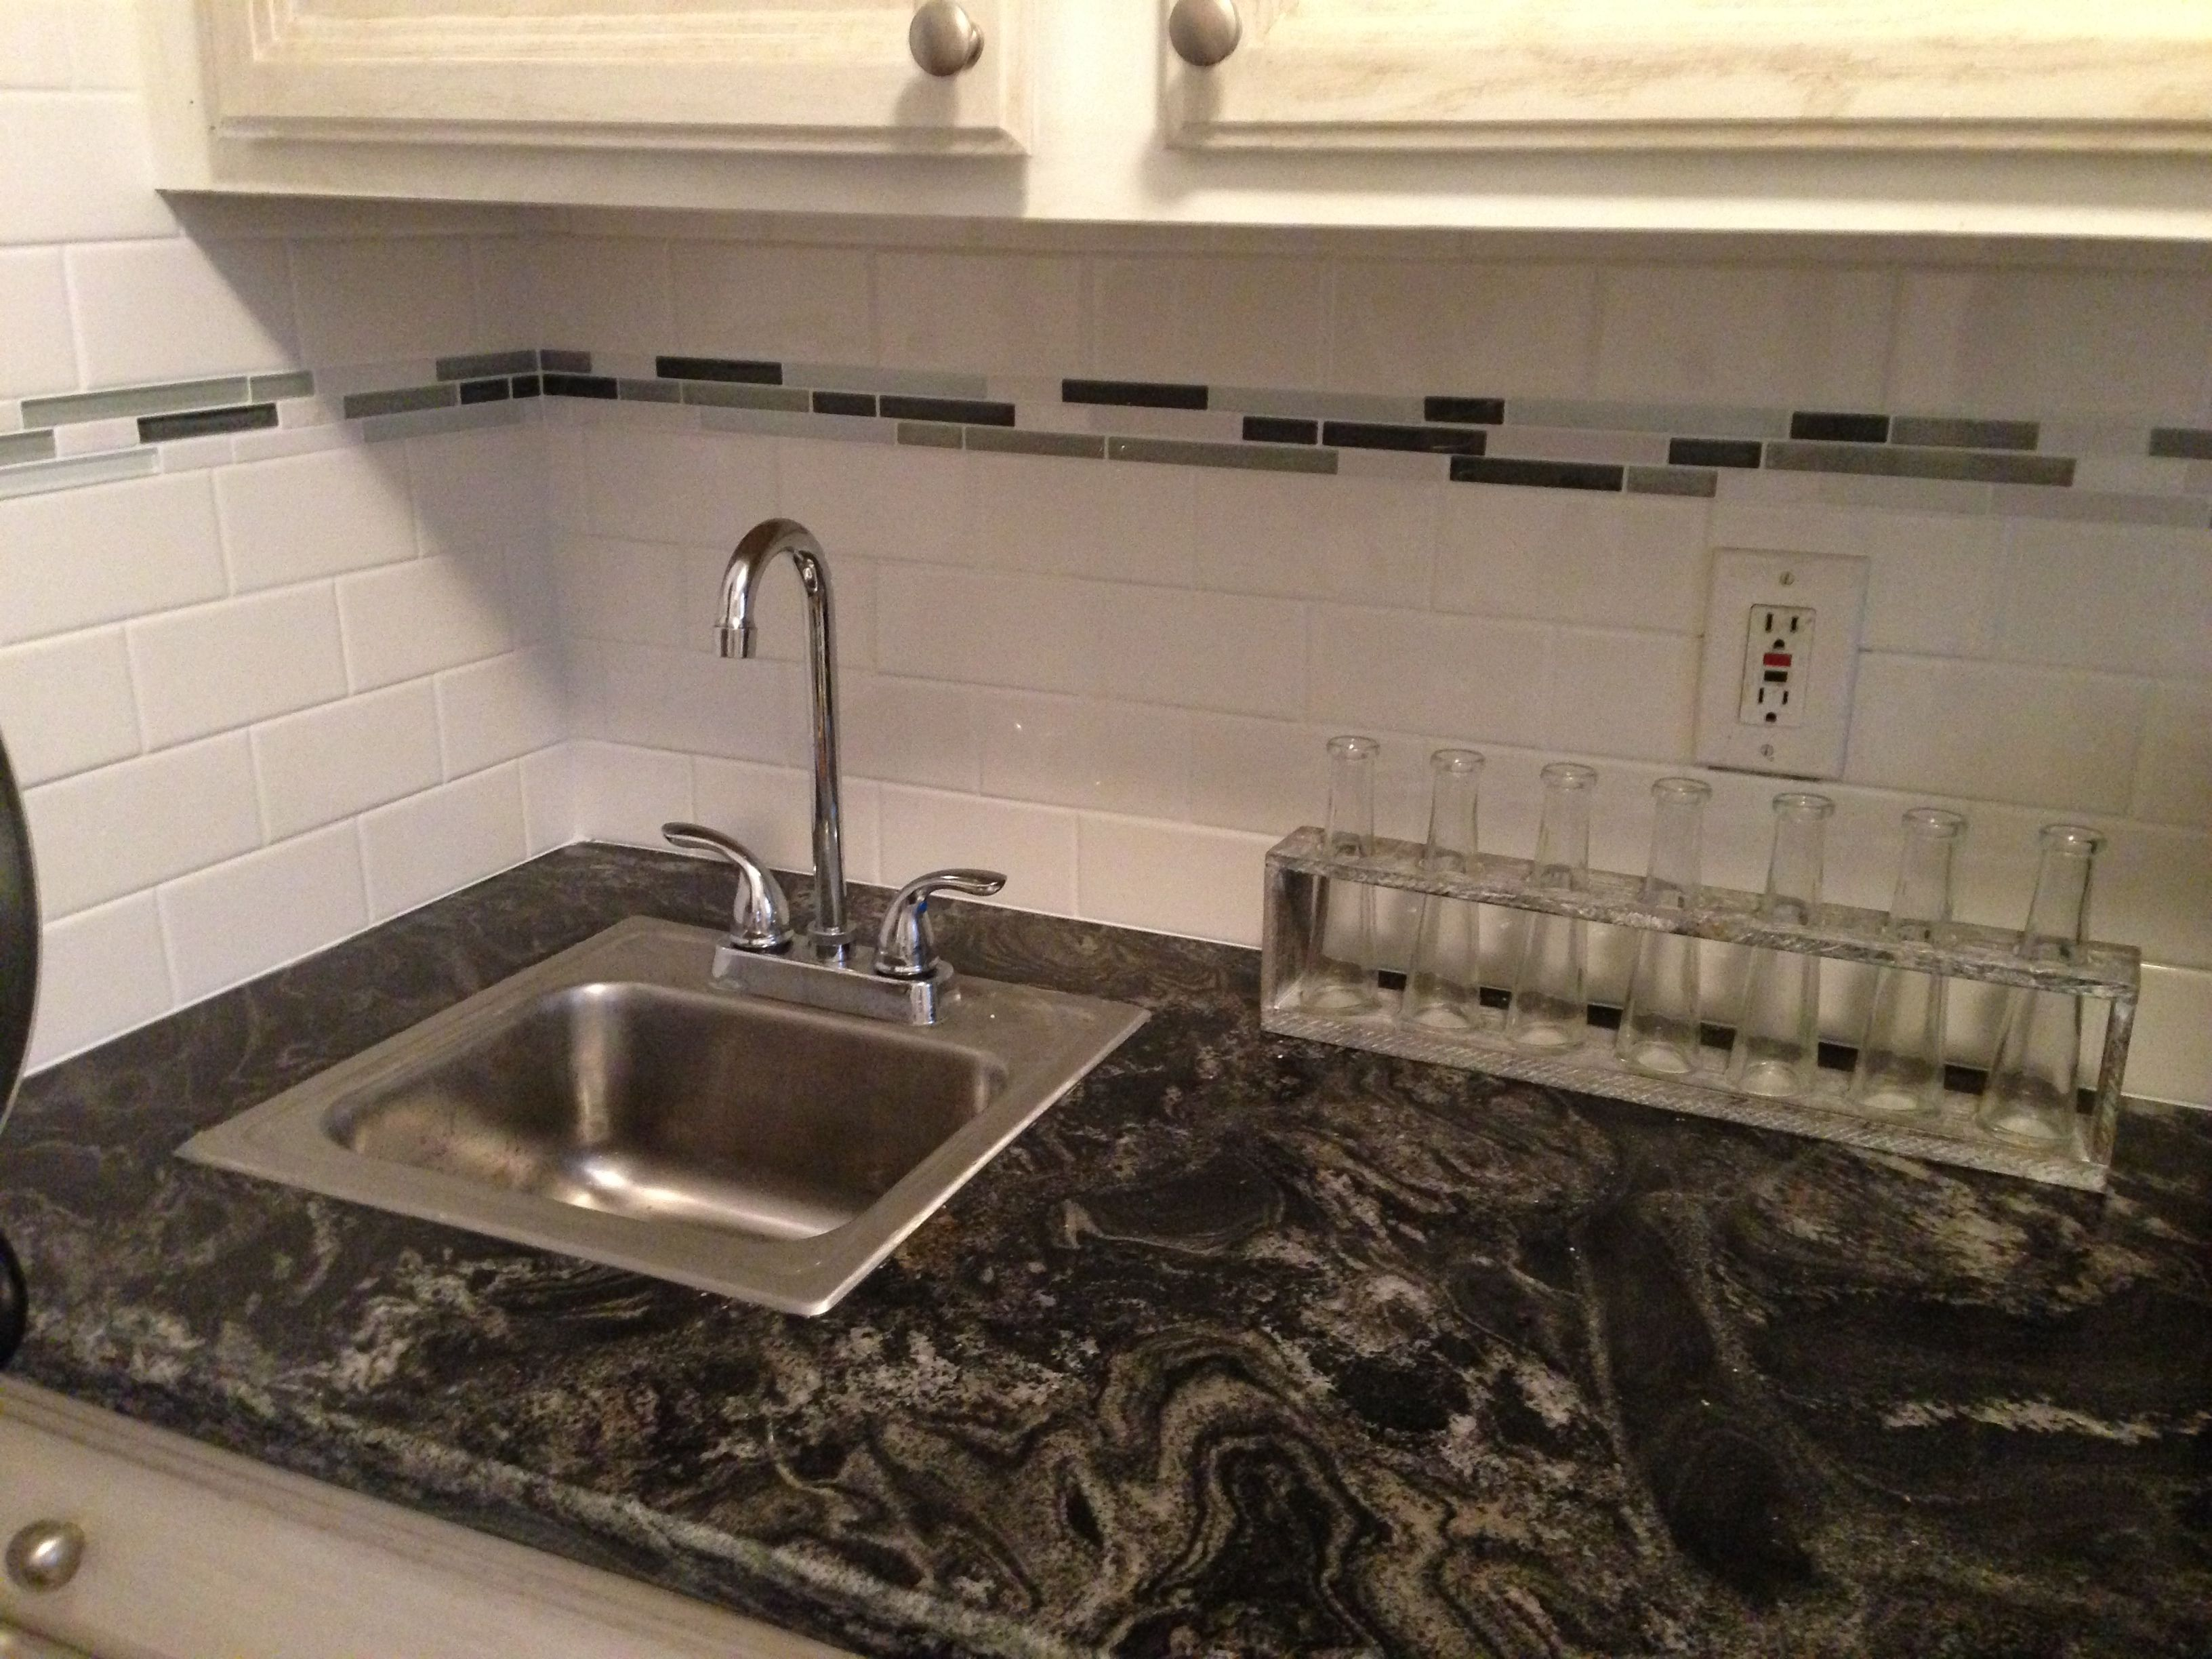 Backsplash Accent Ideas White Subway Tile With Glass Accent Backsplash Our House